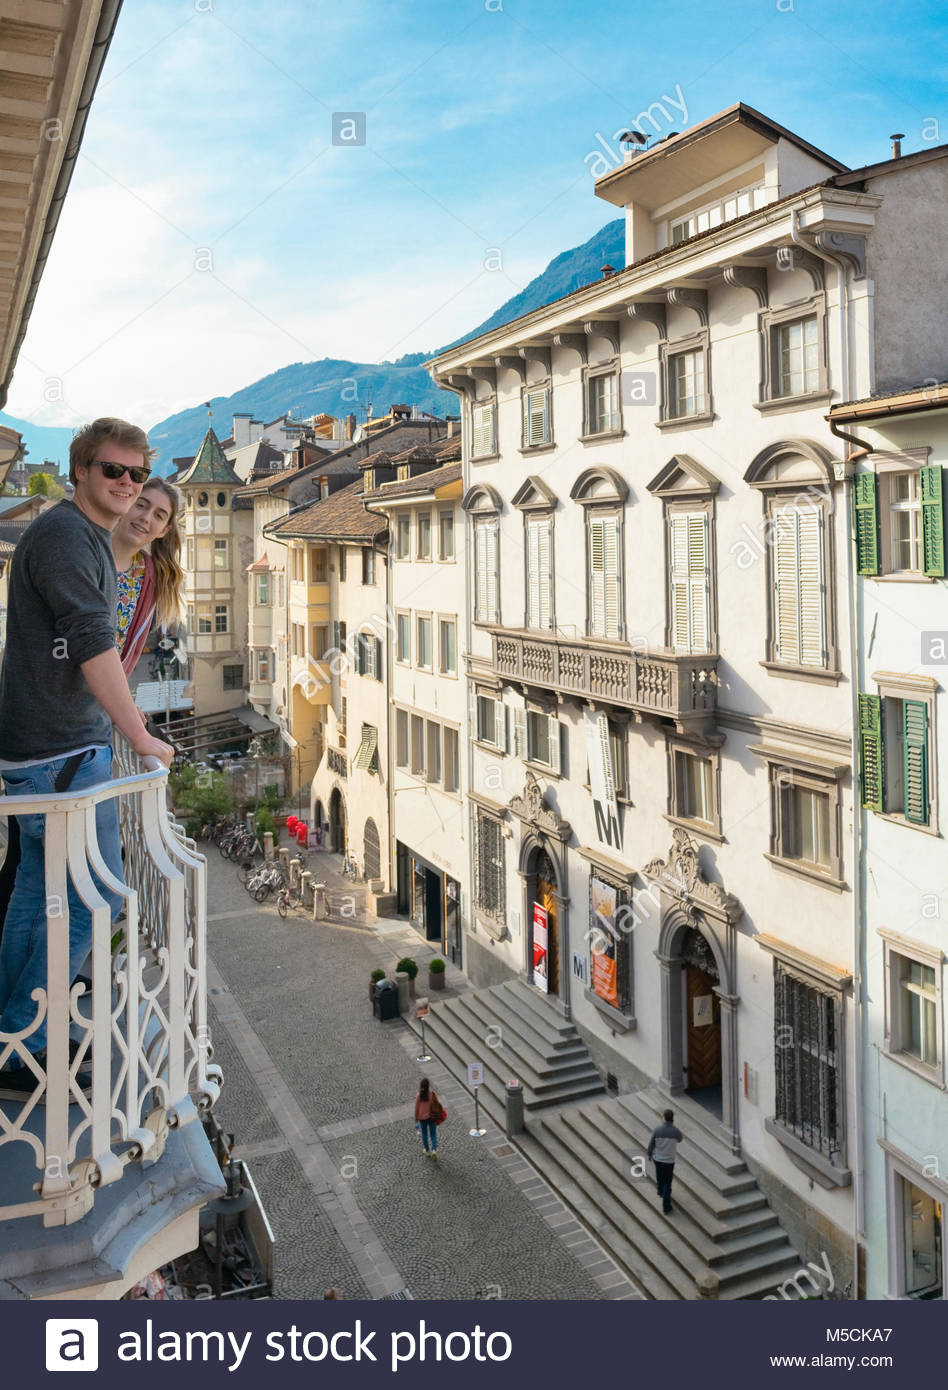 Young happy couple on holiday balcony Italy view - Stock Image